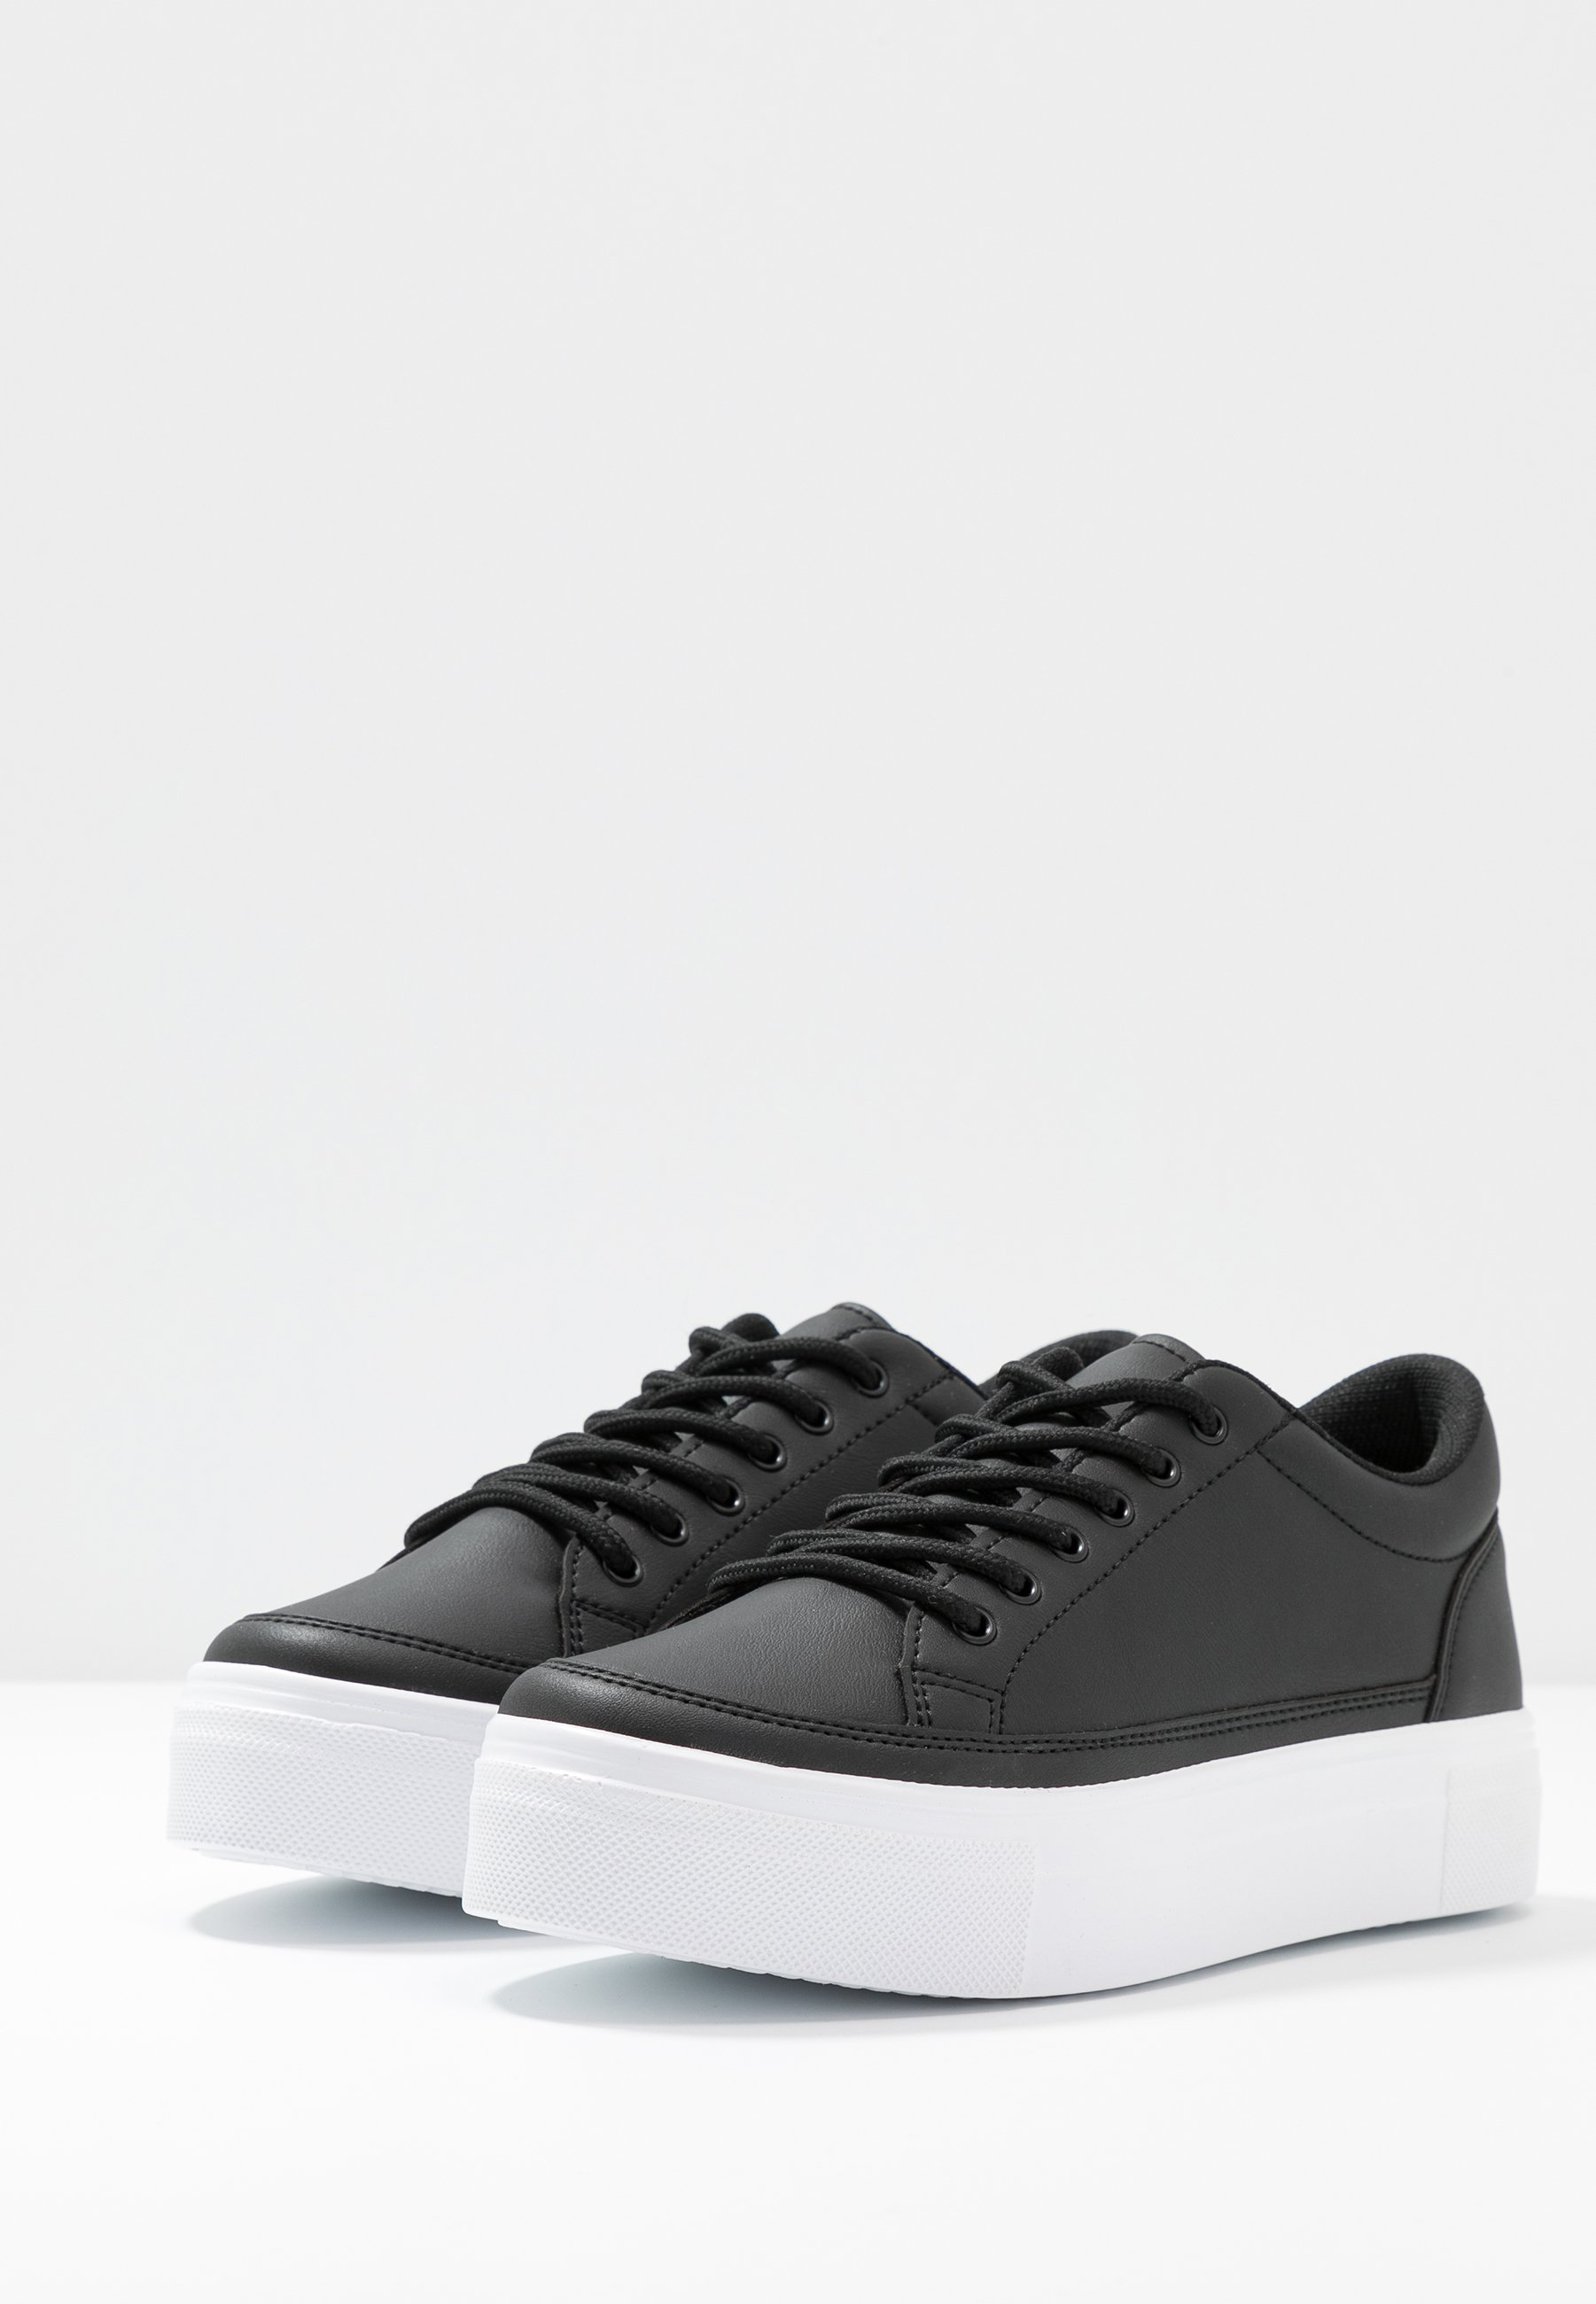 Nly by Nelly PERFECT PLATFORM - Baskets basses - black - Sneakers femme De gros